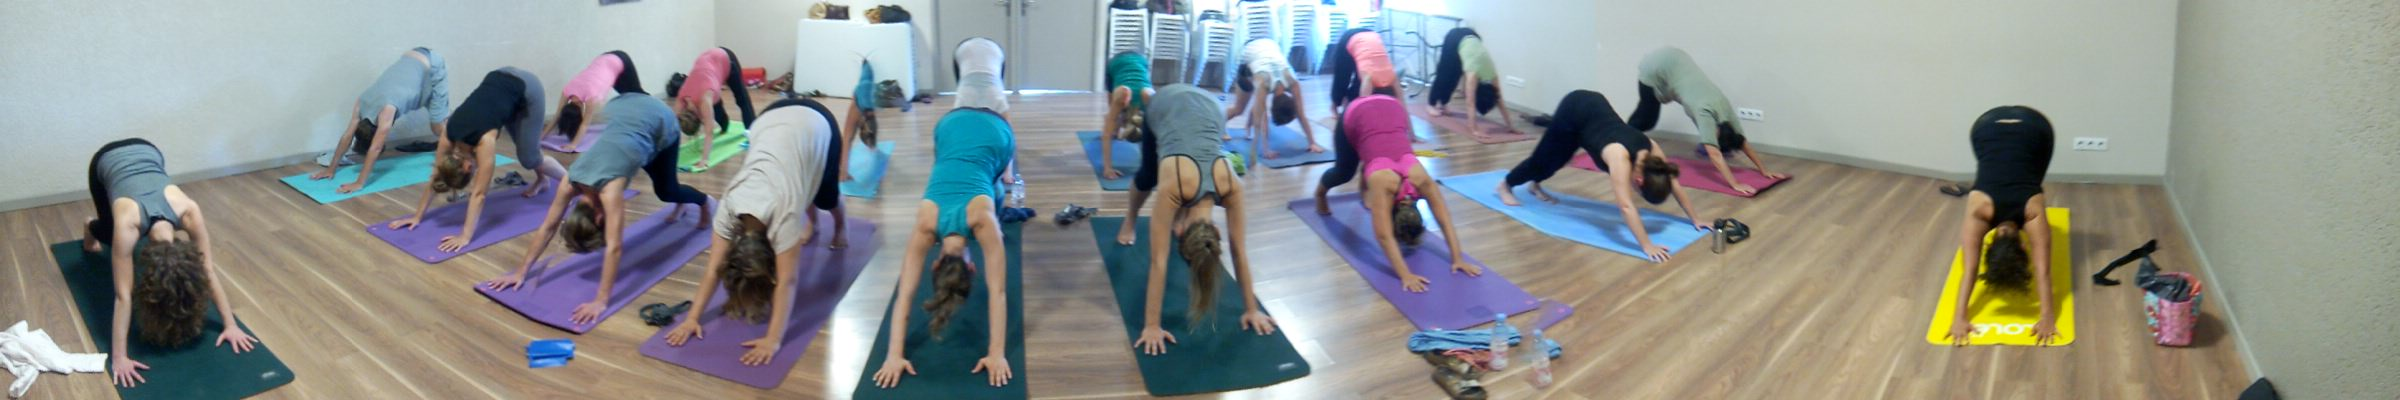 cours-yoga-collectif.jpg